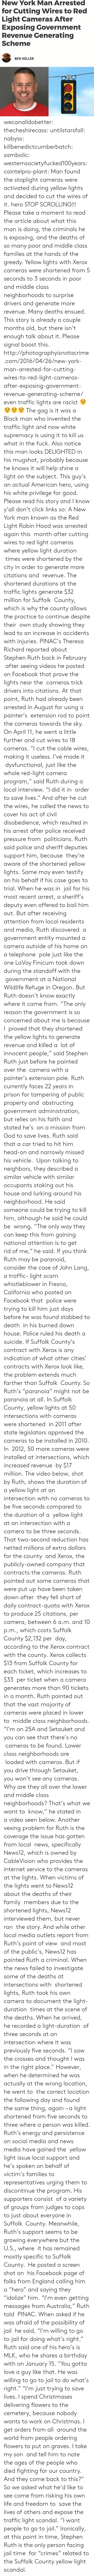 "whistleblower: New York Man Arrested  for Cutting Wires to Red  Light Cameras After  Exposing Government  Revenue Generating  Scheme  BEN KELLER wecanalldobetter: thecheshirecass:  untilstarsfall:   nabyss:  killbenedictcumberbatch:  sambolic:  westernsocietyfucked100years:  cointelpro-plant: Man found the stoplight cameras were activated during yellow lights and decided to cut the wires of it. hero  STOP SCROLLING!!! Please take a moment to read the article about what this man is doing, the criminals he is exposing, and the deaths of so many poor and middle class families at the hands of the greedy. Yellow lights with Xerox cameras were shortened from 5 seconds to 3 seconds in poor and middle class neighborhoods to surprise drivers and generate more revenue. Many deaths ensued. This story is already a couple months old, but there isn't enough talk about it. Please signal boost this. http://photographyisnotacrime.com/2016/04/26/new-york-man-arrested-for-cutting-wires-to-red-light-cameras-after-exposing-government-revenue-generating-scheme/   even traffic lights are racist  😧😧😧😧  The gag is it was a Black man who invented the traffic light and now white supremacy is using it to kill us what in the fuck.   Also notice this man looks DELIGHTED in his mugshot, probably because he knows it will help shine a light on the subject.  This guy's an actual American hero, using his white privilege for good.  Please read his story and I know y'all don't click links so:  A New York man known as the Red Light Robin Hood was arrested again this  month after cutting wires to red light cameras where yellow light duration  times were shortened by the city in order to generate more citations and  revenue.  The shortened durations at the traffic lights generate $32 million for Suffolk  County, which is why the county allows the practice to continue despite their  own study showing they lead to an increase in accidents with injuries.  PINAC's Theresa Richard reported about Stephen Ruth back in February  after seeing videos he posted on Facebook that prove the lights near the  cameras trick drivers into citations.  At that point, Ruth had already been arrested in August for using a painter's  extension rod to point the cameras towards the sky.  On April 11, he went a little further and cut wires to 18 cameras.  ""I cut the cable wires, making it useless. I've made it  dysfunctional, just like the whole red-light camera  program,"" said Ruth during a local interview. ""I did it in  order to save lives.""  And after he cut the wires, he called the news to cover his act of civil  disobedience, which resulted in his arrest after police received pressure from  politicians. Ruth said police and sheriff deputies support him, because  they're aware of the shortened yellow lights.  Some may even testify on his behalf if his case goes to trial. When he was in  jail for his most recent arrest, a sheriff's deputy even offered to bail him out.  But after receiving attention from local residents and media, Ruth discovered  a government entity mounted a camera outside of his home on a telephone  pole just like the one LaVoy Finicum took down during the standoff with the  government at a National Wildlife Refuge in Oregon.  But Ruth doesn't know exactly where it came from.  ""The only reason the government is so concerned about me is because I  proved that they shortened the yellow lights to generate revenue and killed a  lot of innocent people,"" said Stephen Ruth just before he painted over the  camera with a painter's extension pole.  Ruth currently faces 22 years in prison for tampering of public property and  obstructing government administration, but relies on his faith and stated he's  on a mission from God to save lives.  Ruth said that a car tried to hit him head-on and narrowly missed his vehicle.  Upon talking to neighbors, they described a similar vehicle with similar  occupants staking out his house and lurking around his neighborhood.  He said someone could be trying to kill him, although he said he could be  wrong.  ""The only way they can keep this from gaining national attention is to get rid of me,"" he said.  If you think Ruth may be paranoid, consider the case of John Lang, a traffic- light scam whistleblower in Fresno, California who posted on Facebook that  police were trying to kill him just days before he was found stabbed to death  in his burned down house.  Police ruled his death a suicide.  If Suffolk County's contract with Xerox is any indication of what other cities'  contracts with Xerox look like, the problem extends much farther than Suffolk  County. So Ruth's ""paranoia"" might not be paranoia at all.  In Suffolk County, yellow lights at 50 intersections with cameras were shortened  in 2011 after state legislators approved the cameras to be installed in 2010. In  2012, 50 more cameras were installed at intersections, which increased revenue  by $17 million.  The video below, shot by Ruth, shows the duration of a yellow light at an  intersection with no cameras to be five seconds compared to the duration of a  yellow light at an intersection with a camera to be three seconds.  That two-second reduction has netted millions of extra dollars for the county  and Xerox, the publicly-owned company that contracts the cameras.  Ruth pointed out some cameras that were put up have been taken down after  they fell short of daily contract-quota with Xerox to produce 25 citations, per  camera, between 6 a.m. and 10 p.m., which costs Suffolk County $2,132 per  day, according to the Xerox contract with the county.  Xerox collects $13 from Suffolk County for each ticket, which increases to $33  per ticket when a camera generates more than 90 tickets in a month.  Ruth pointed out that the vast majority of cameras were placed in lower to  middle class neighborhoods.  ""I'm on 25A and Setauket and you can see that there's no  cameras to be found. Lower class neighborhoods are  loaded with cameras. But if you drive through Setauket,  you won't see any cameras. Why are they all over the lower  and middle class neighborhoods? That's what we want to  know,"" he stated in a video seen below.  Another vexing problem for Ruth is the coverage the issue has gotten from local  news, specifically News12, which is owned by CableVision who provides the  internet service to the cameras at the lights.  When victims of the lights went to News12 about the deaths of their family  members due to the shortened lights, News12 interviewed them, but never ran  the story. And while other local media outlets report from Ruth's point of view  and most of the public's, News12 has painted Ruth a criminal.  When the news failed to investigate some of the deaths at intersections with  shortened lights, Ruth took his own camera to document the light-duration  times at the scene of the deaths. When he arrived, he recorded a light-duration  of three seconds at an intersection where it was previously five seconds.  ""I saw the crosses and thought I was in the right place.""  However, when he determined he was actually at the wrong location, he went to  the correct location the following day and found the same thing, again – a light  shortened from five seconds to three where a person was killed.  Ruth's energy and persistence on social media and news media have gained the  yellow light issue local support and he's spoken on behalf of victim's families to  representatives urging them to discontinue the program. His supporters consist  of a variety of groups from judges to cops to just about everyone in Suffolk  County.  Meanwhile, Ruth's support seems to be growing everywhere but the U.S., where  it has remained mostly specific to Suffolk County.  He posted a screen shot on  his Facebook page of folks from England calling him a ""hero"" and saying they  ""idolize"" him.  ""I'm even getting messages from Australia,"" Ruth told  PINAC. When asked if he was afraid of the possibility of jail  he said, ""I'm willing to go to jail for doing what's right.""  Ruth said one of his hero's is MLK, who he shares a birthday with on January 15.  ""You gotta love a guy like that. He was willing to go to jail to do what's right."" ""I'm just trying to save lives. I spend Christmases delivering flowers to the  cemetery, because nobody wants to work on Christmas. I get orders from all  around the world from people ordering flowers to put on graves. I take my son  and tell him to note the ages of the people who died fighting for our country.  And they come back to this?""  So we asked what he'd like to see come from risking his own life and freedom to  save the lives of others and expose the traffic light scandal.  ""I want people to go to jail.""  Ironically, at this point in time, Stephen Ruth is the only person facing jail time  for ""crimes"" related to the Suffolk County yellow light scandal."